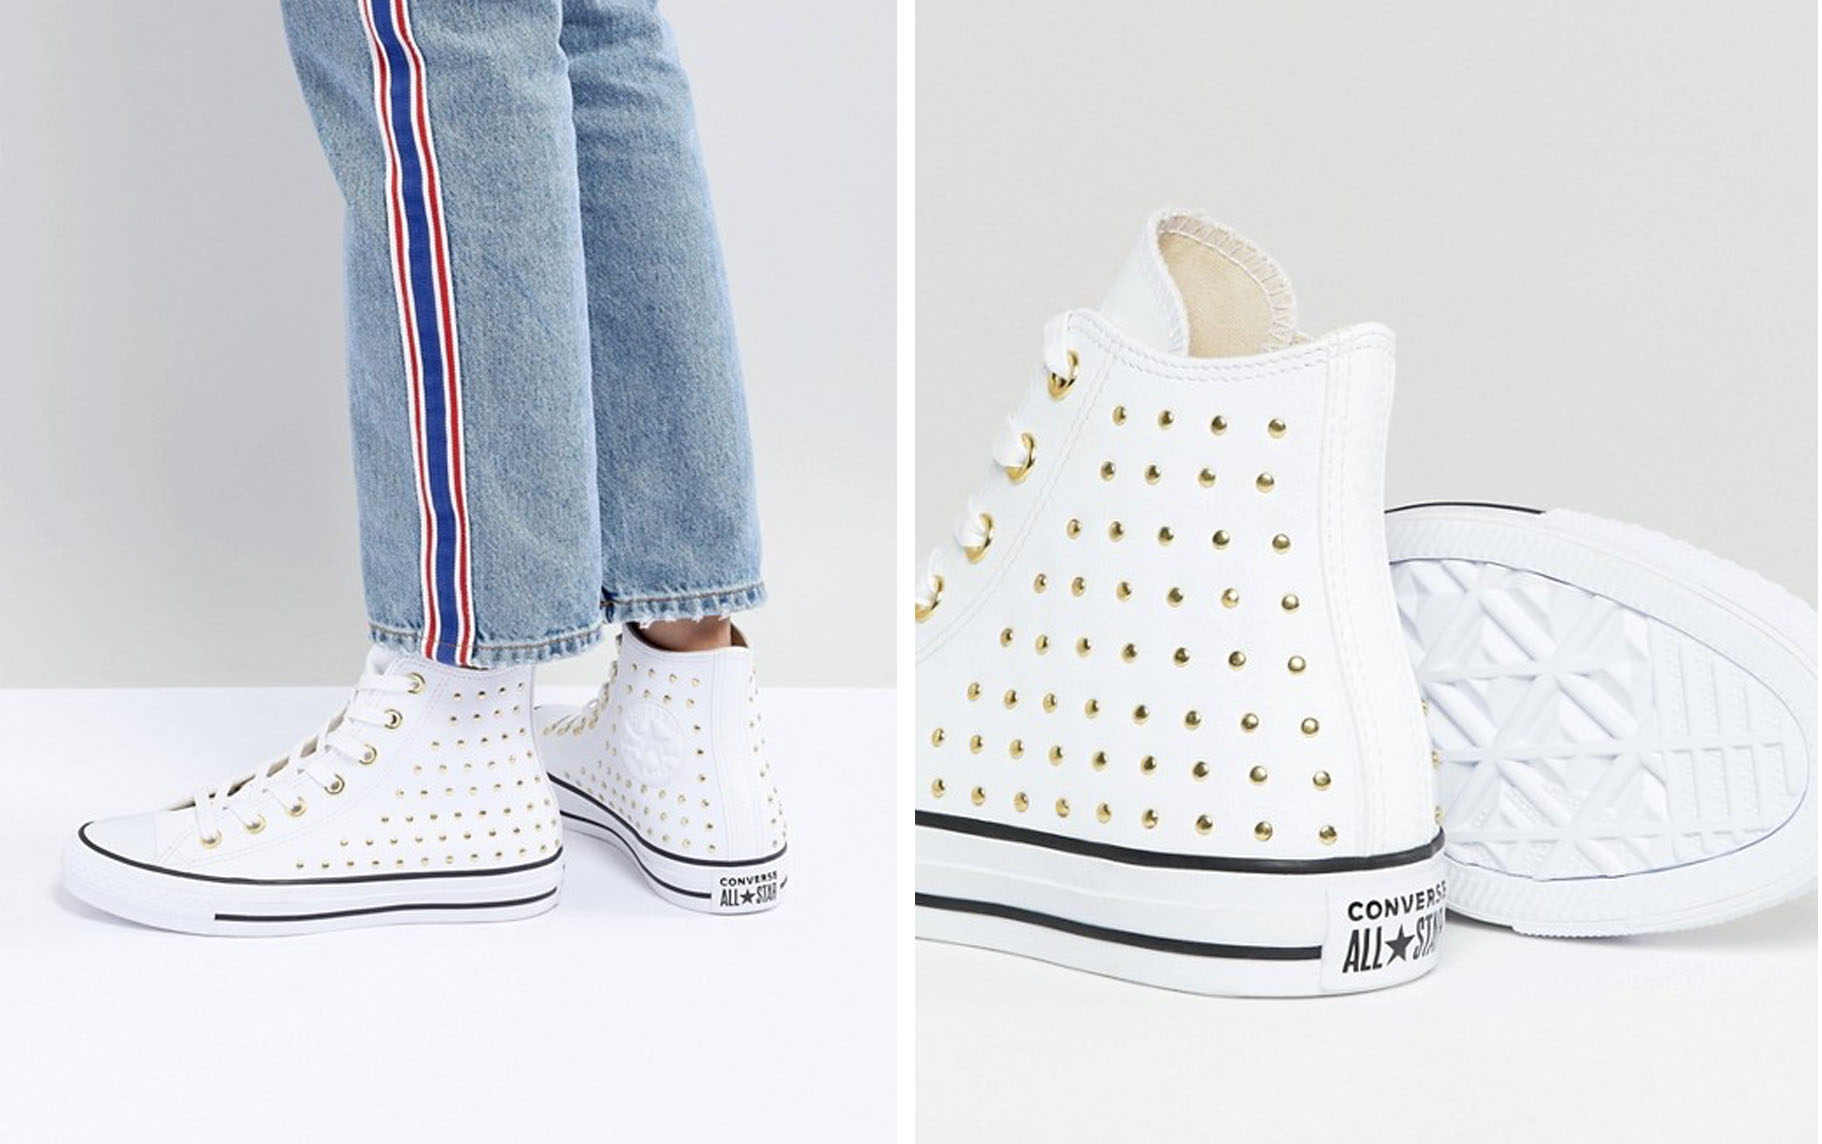 separation shoes 148ab 6e667 Finish 2018 With THESE Boxing Day Steals From ASOS   Sneaker Events ...